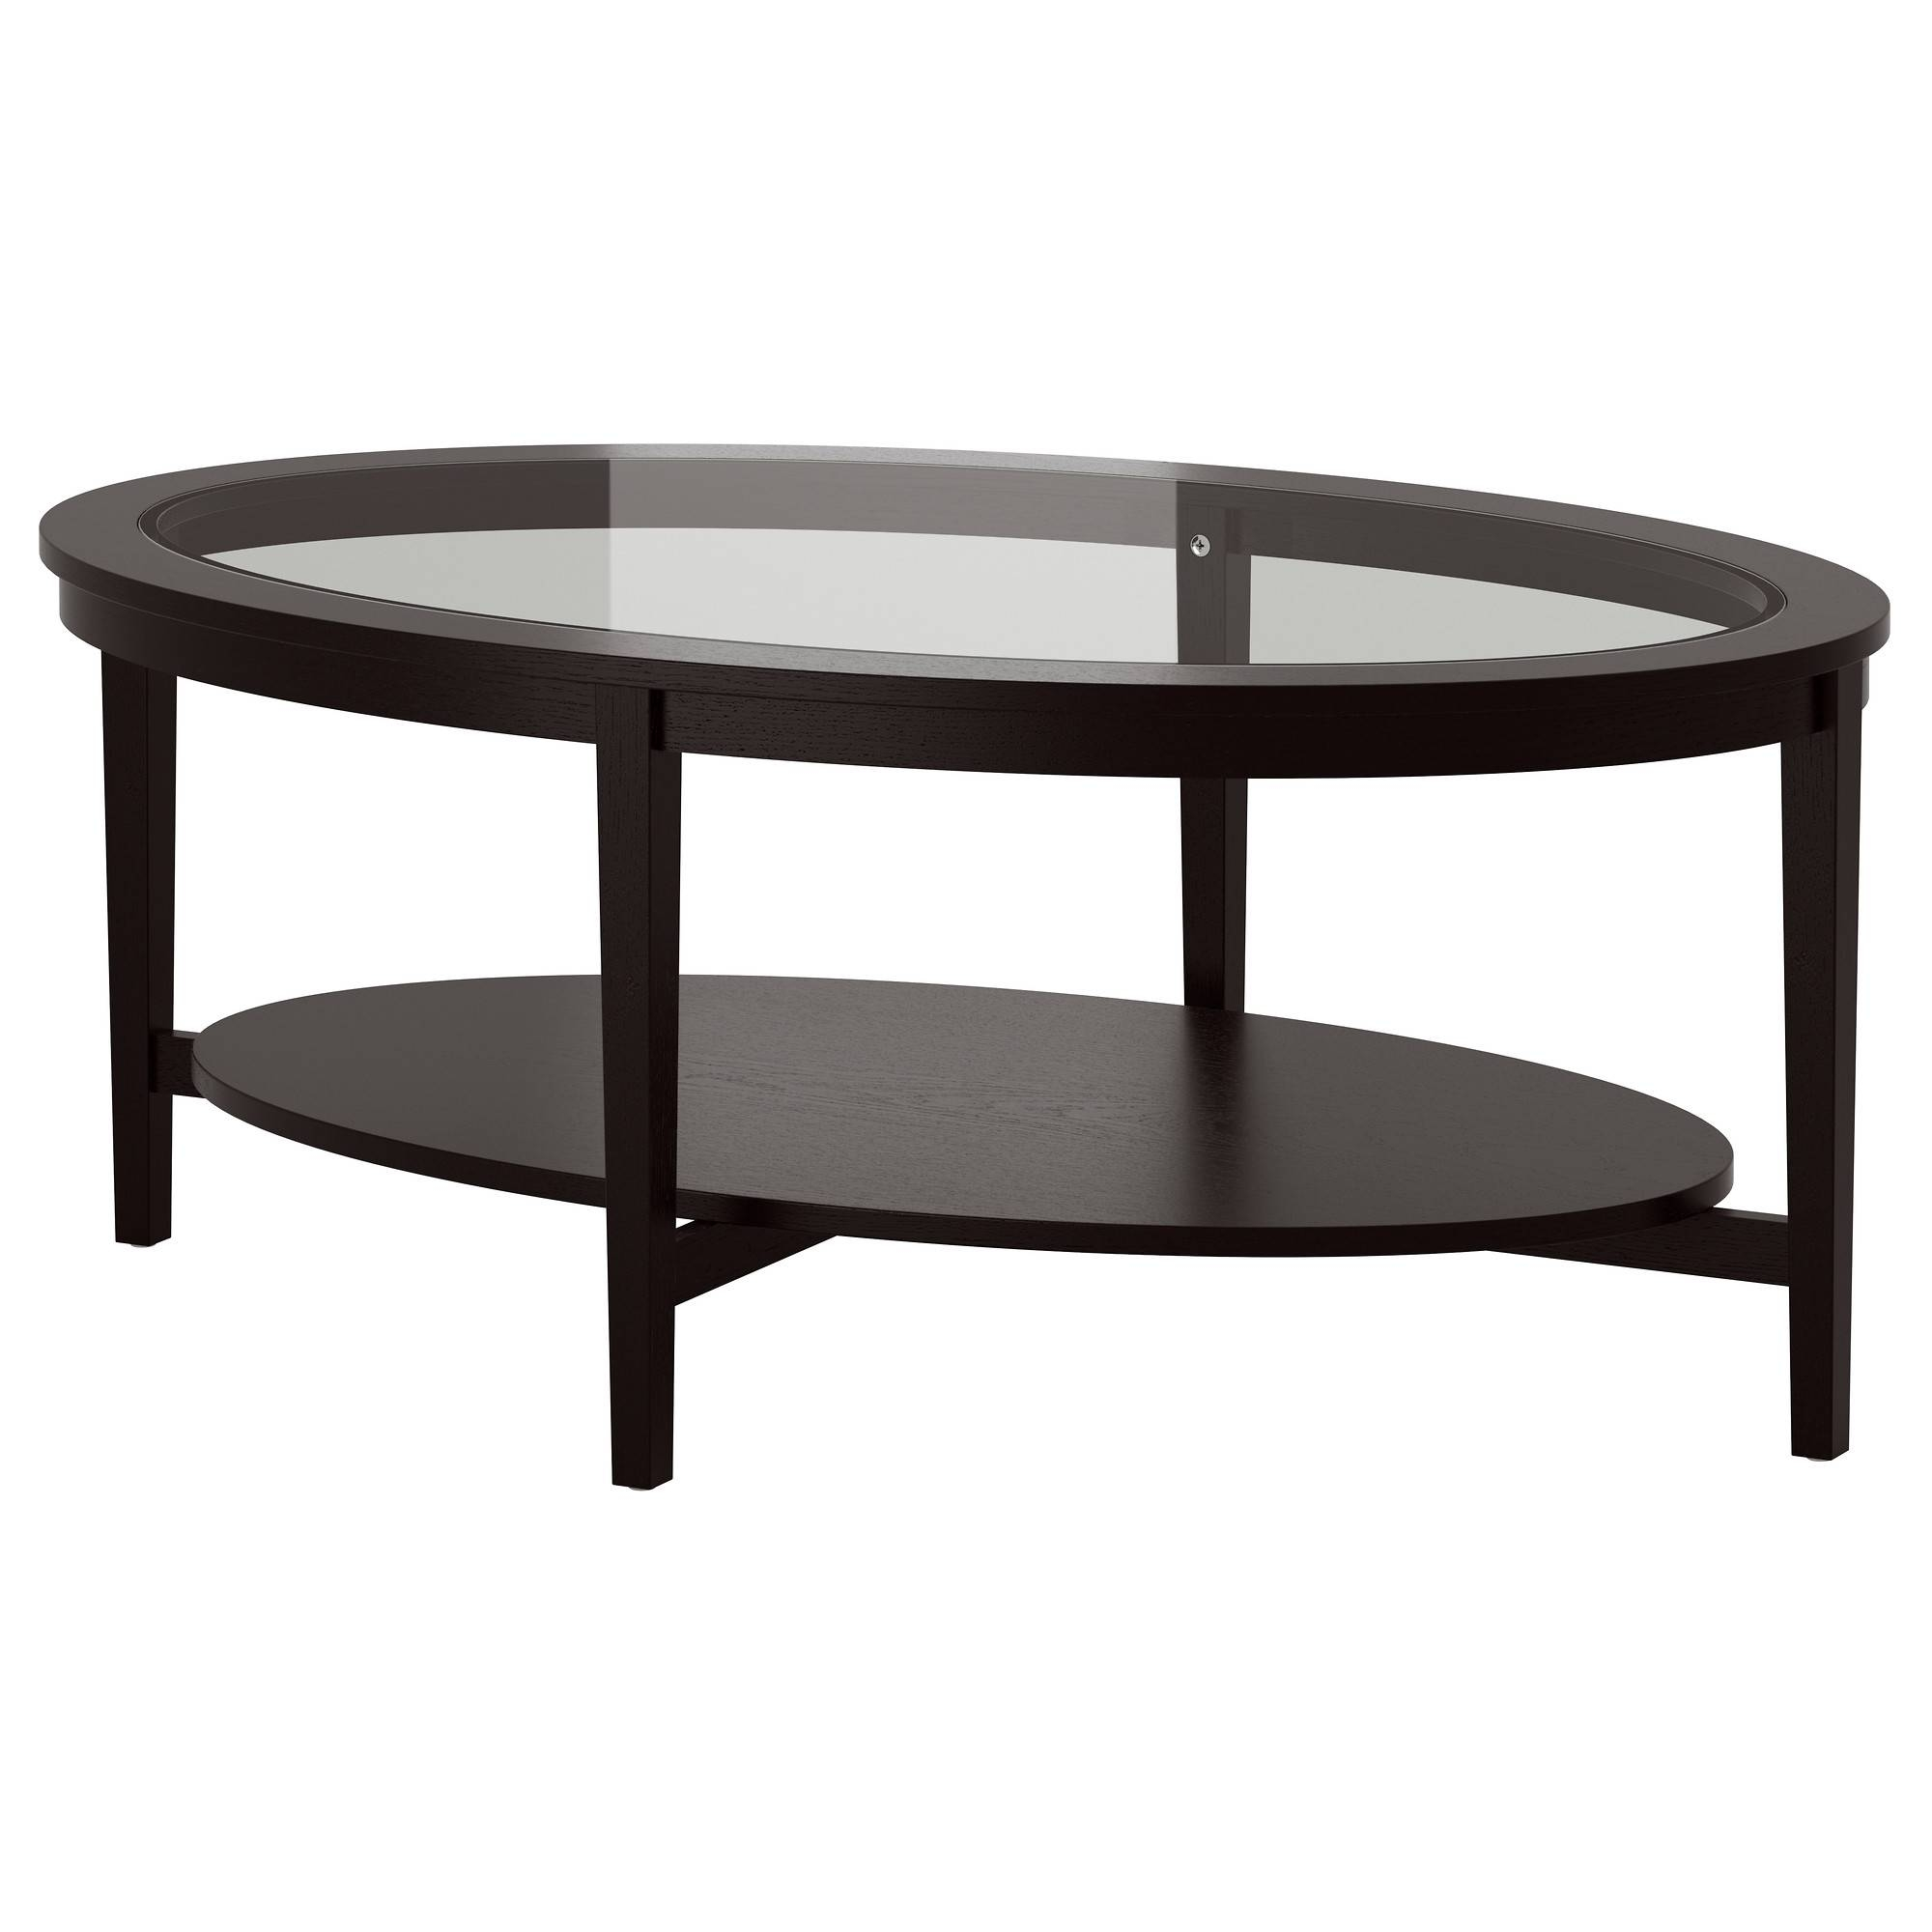 Coffee Tables - Glass & Wooden Coffee Tables - Ikea with regard to Oblong Coffee Tables (Image 8 of 30)